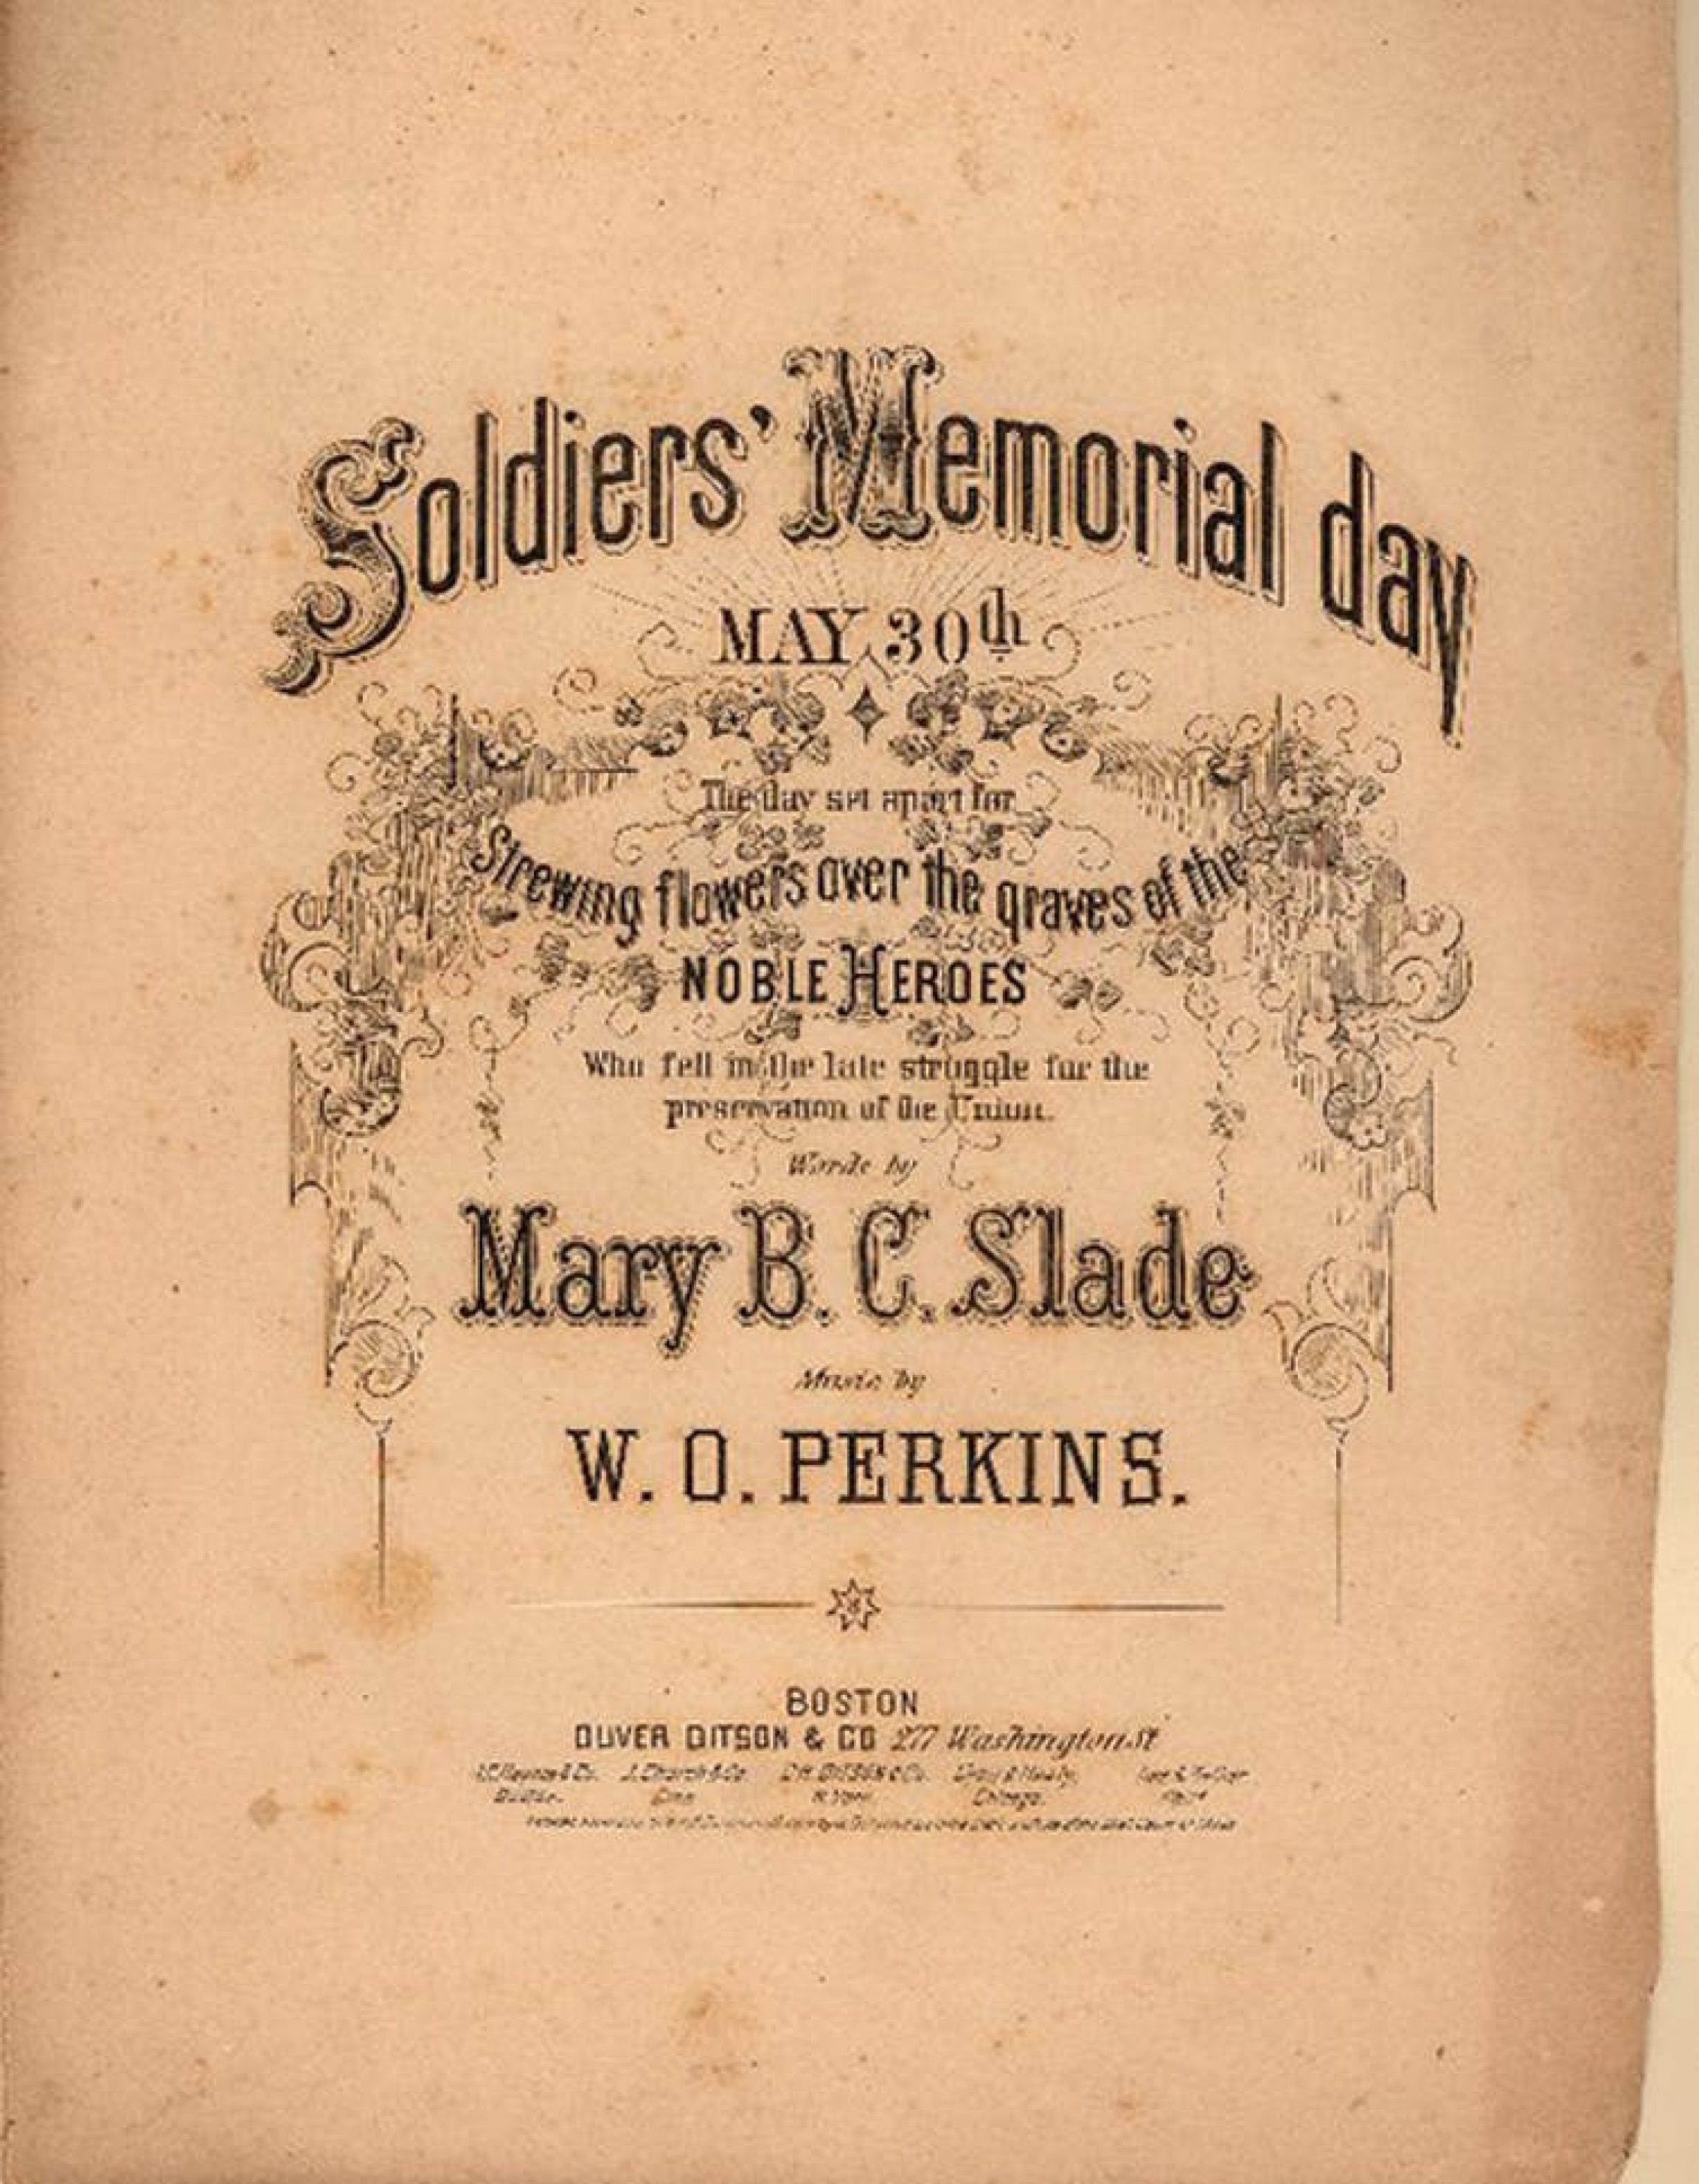 Sheet music written to commemorate Memorial Day in 1870.